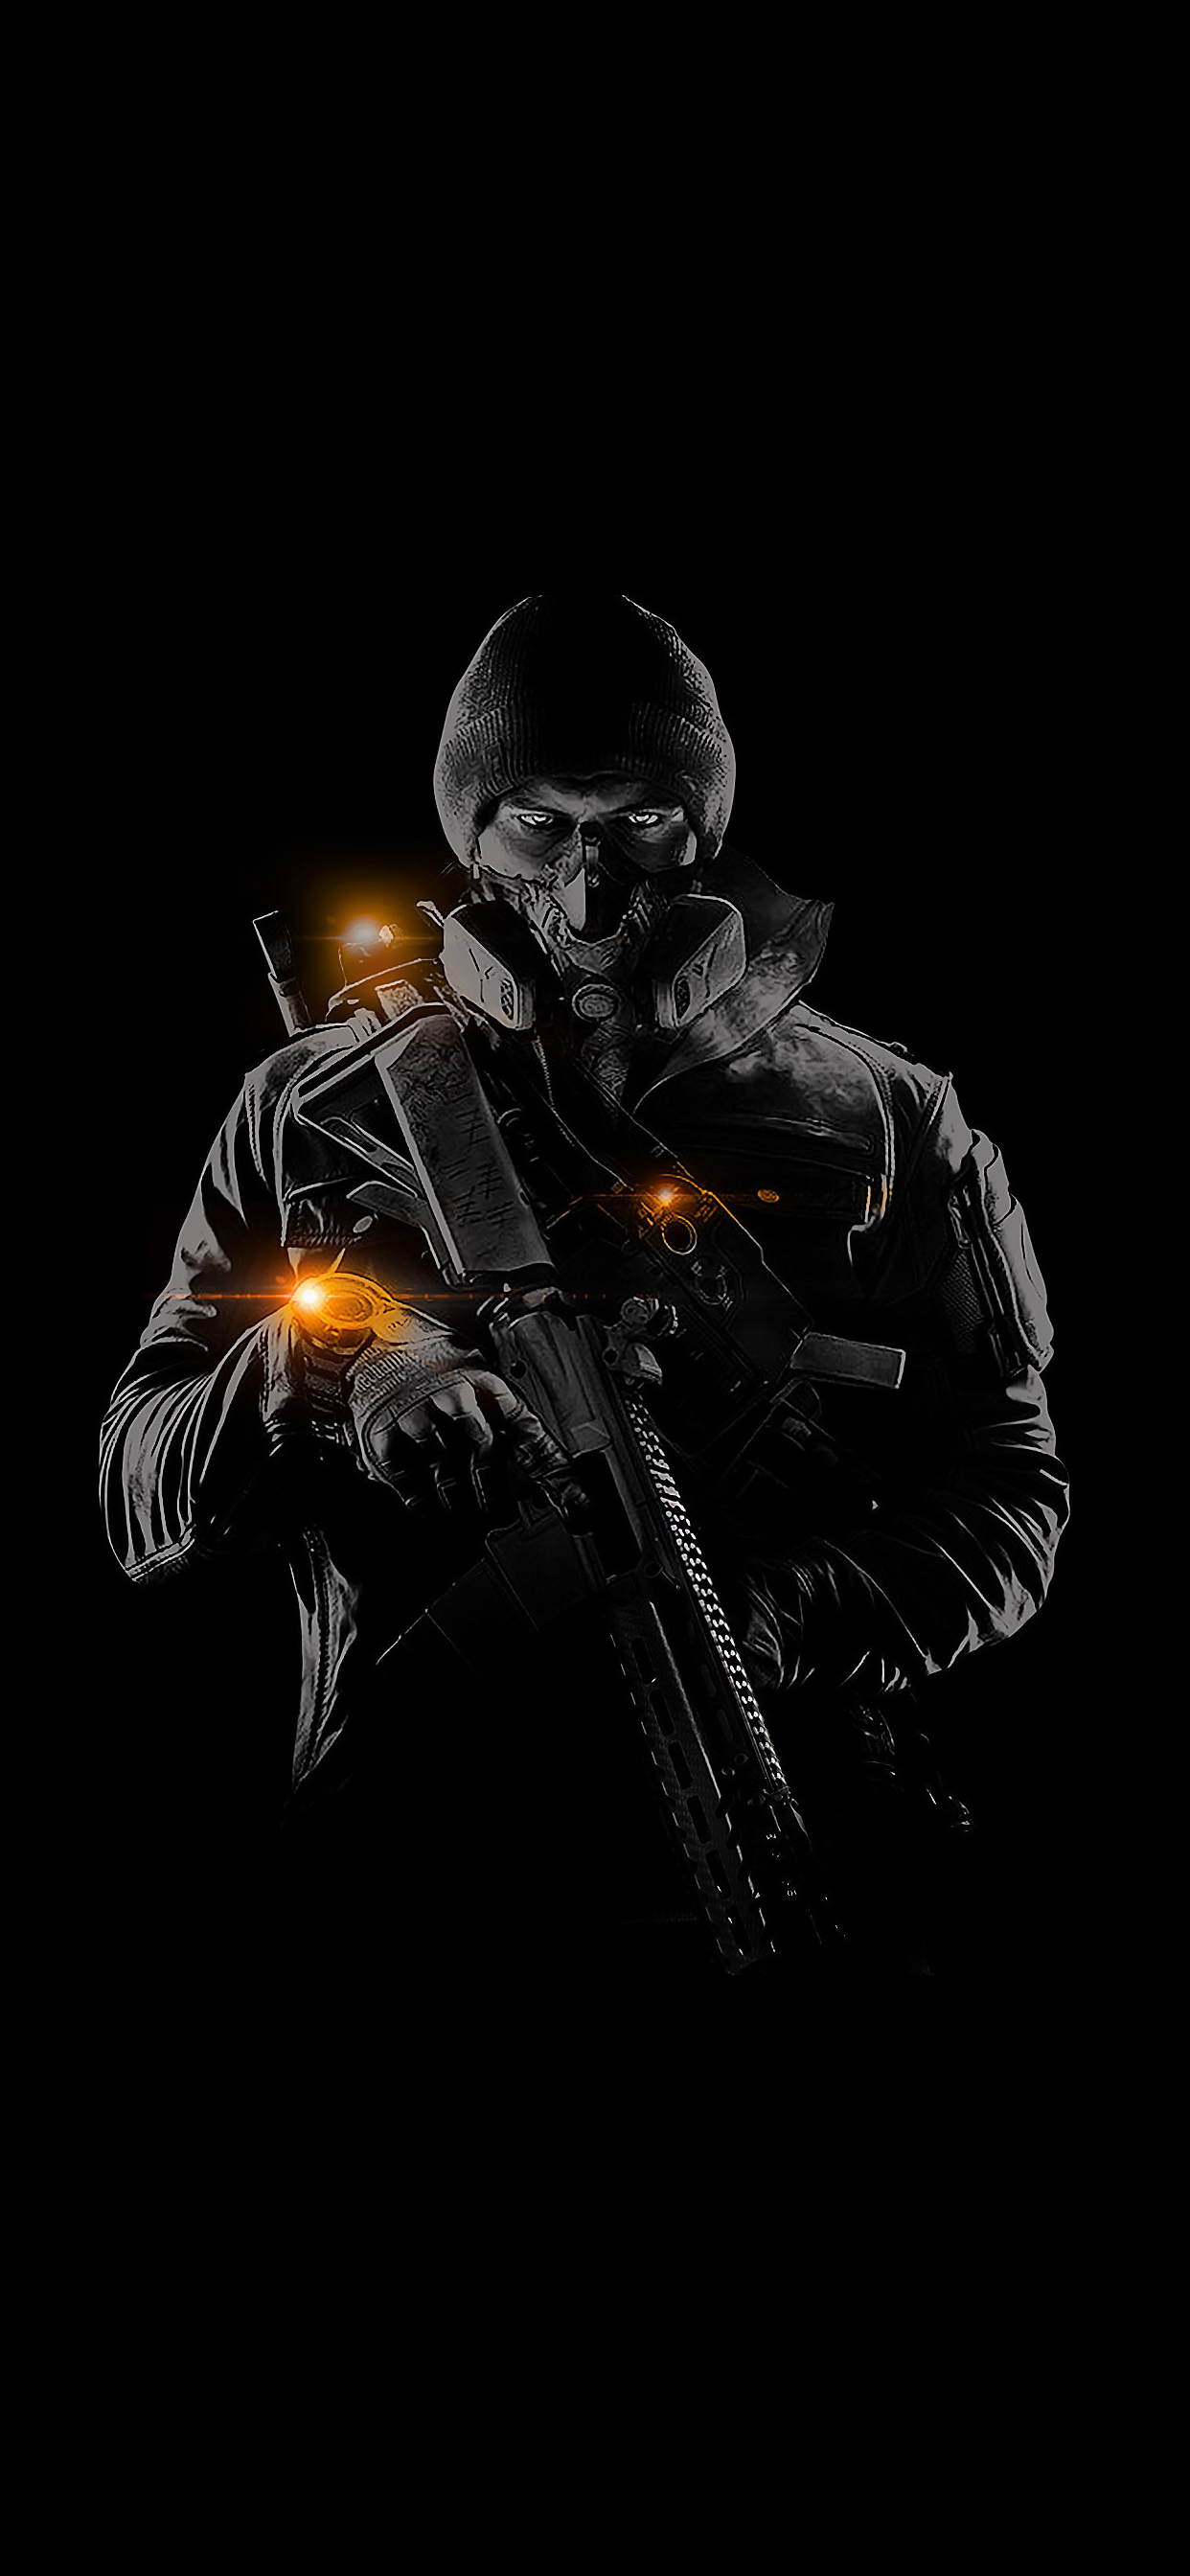 90 906915 the division 2 iphone xs max wallpaper s10